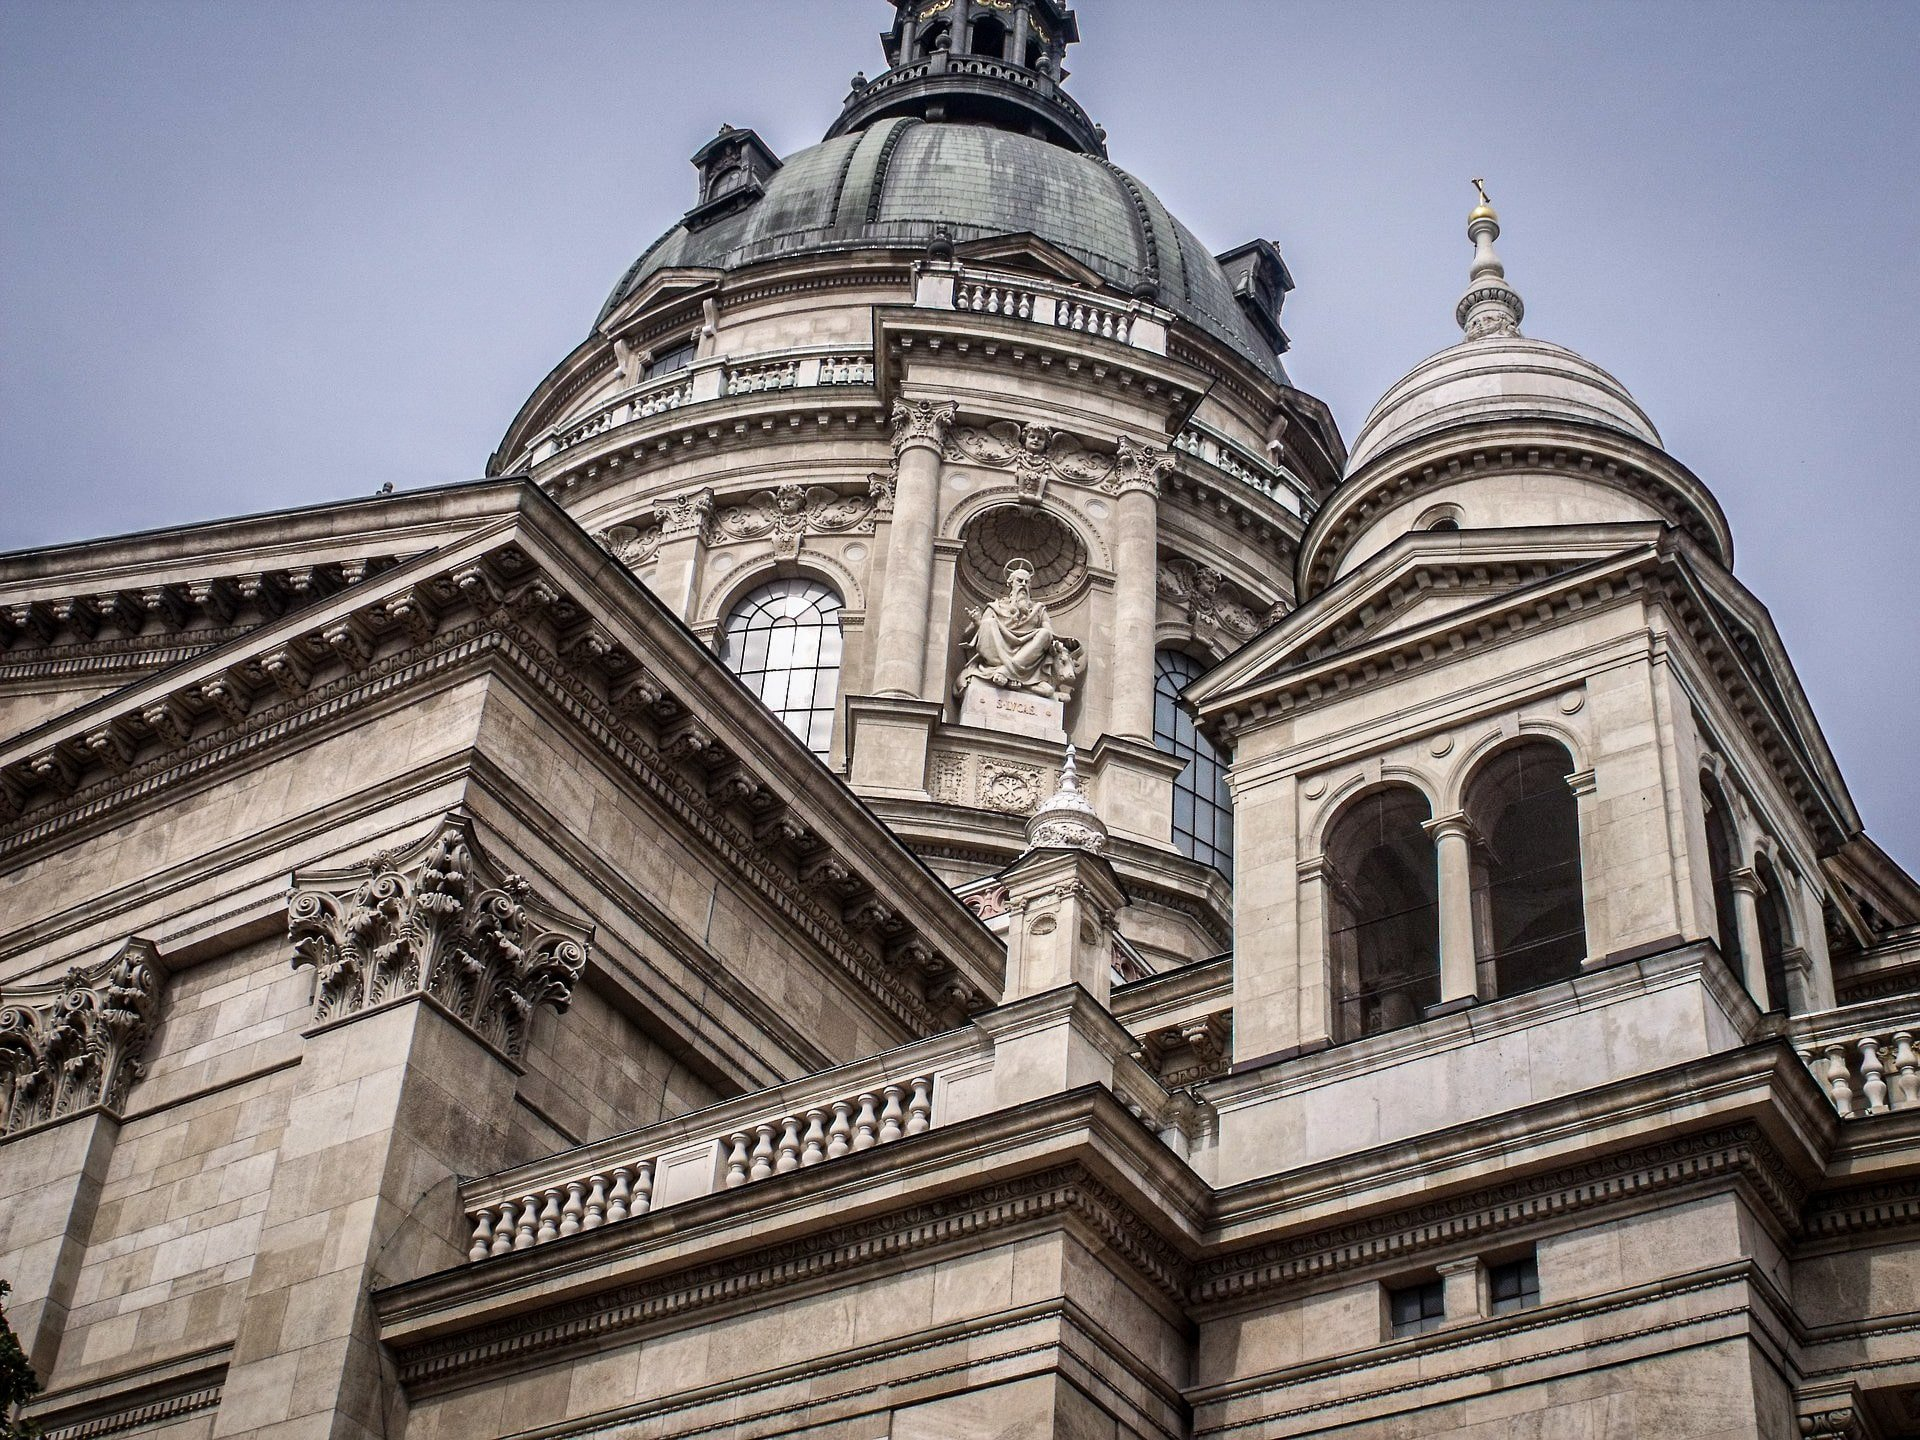 St. Stephen's Basilica in Pest - Budapest